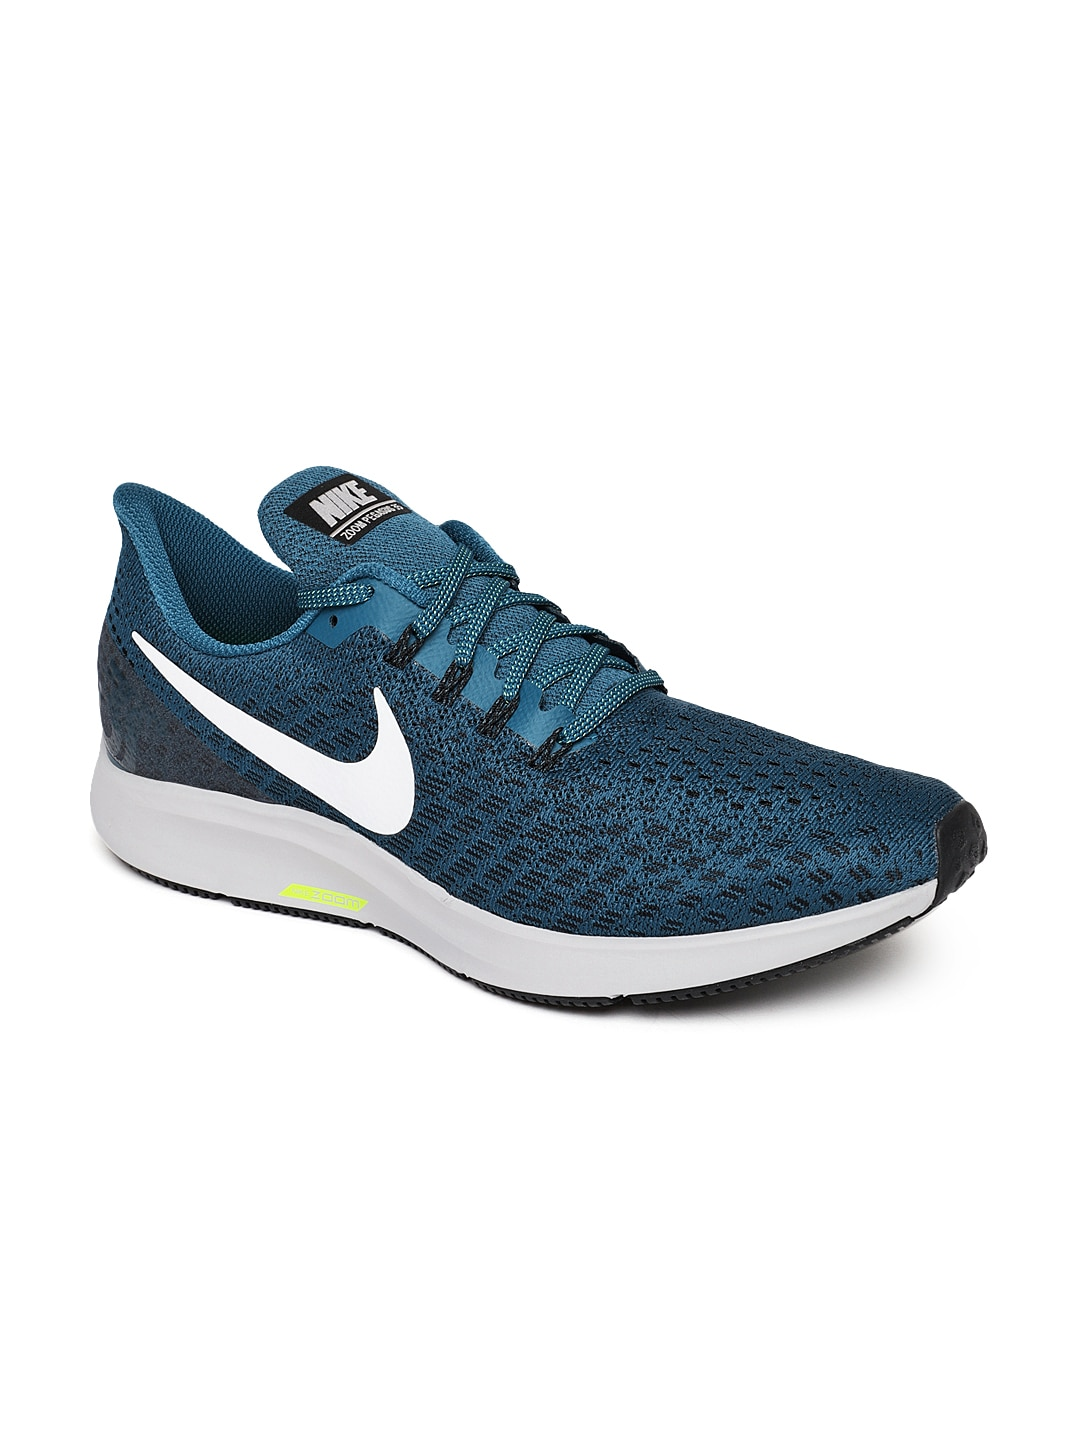 d67d0e3a4bfded Nike - Shop for Nike Apparels Online in India